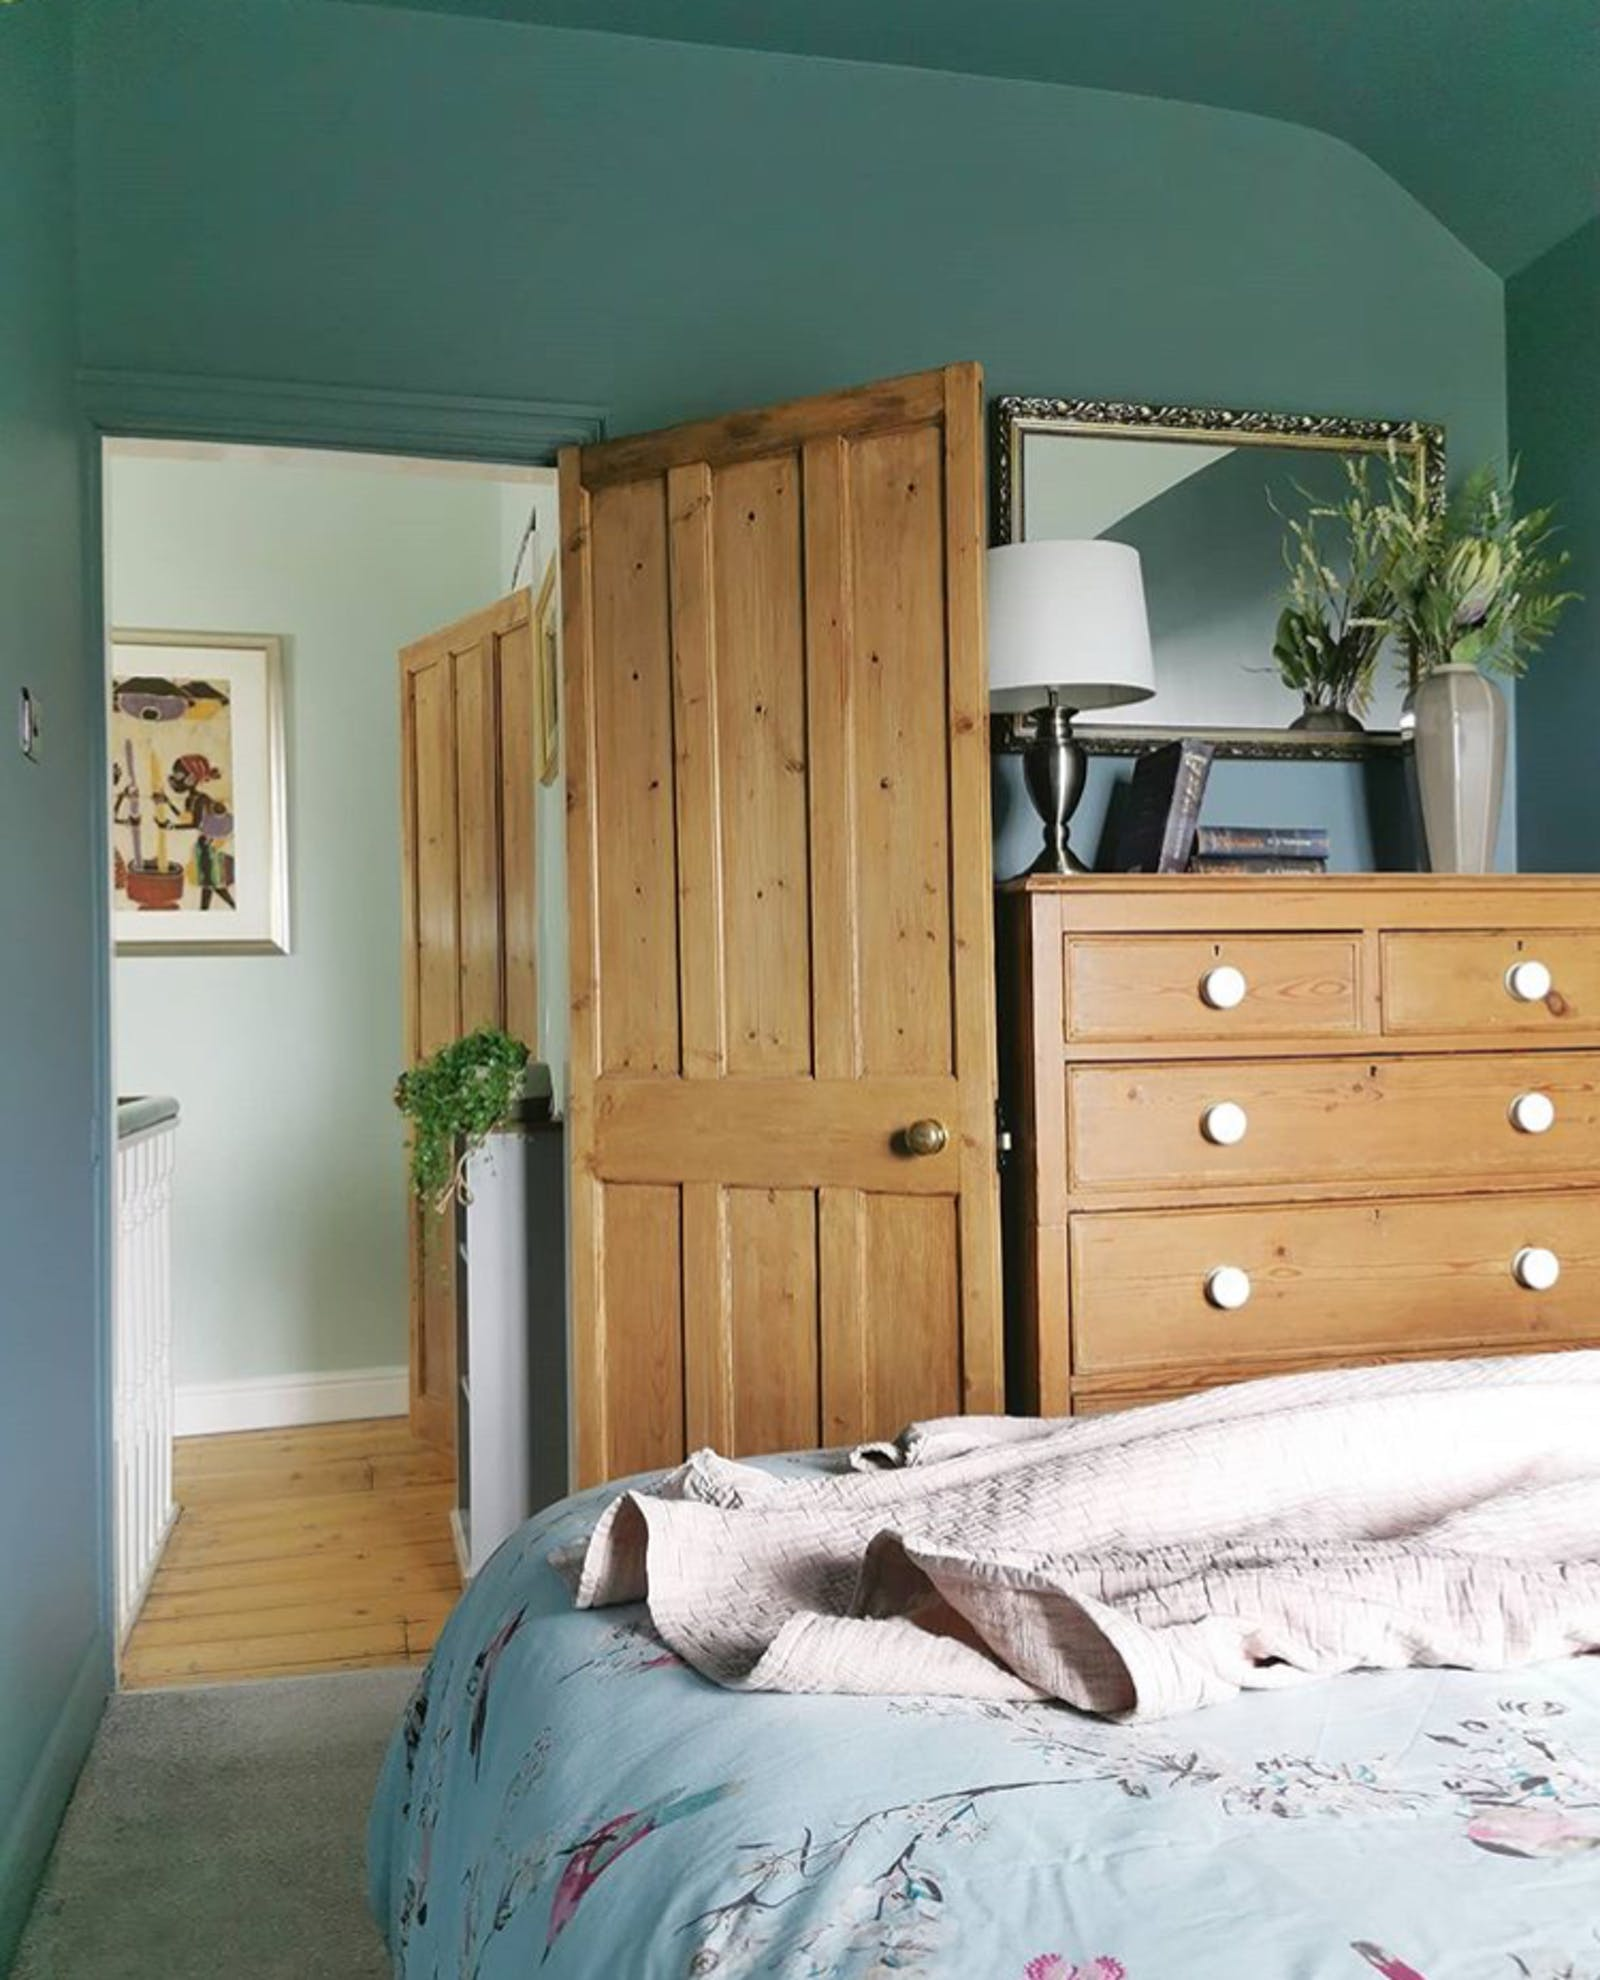 Bedroom wall painted in Lick Teal 03 with wooden furnishings